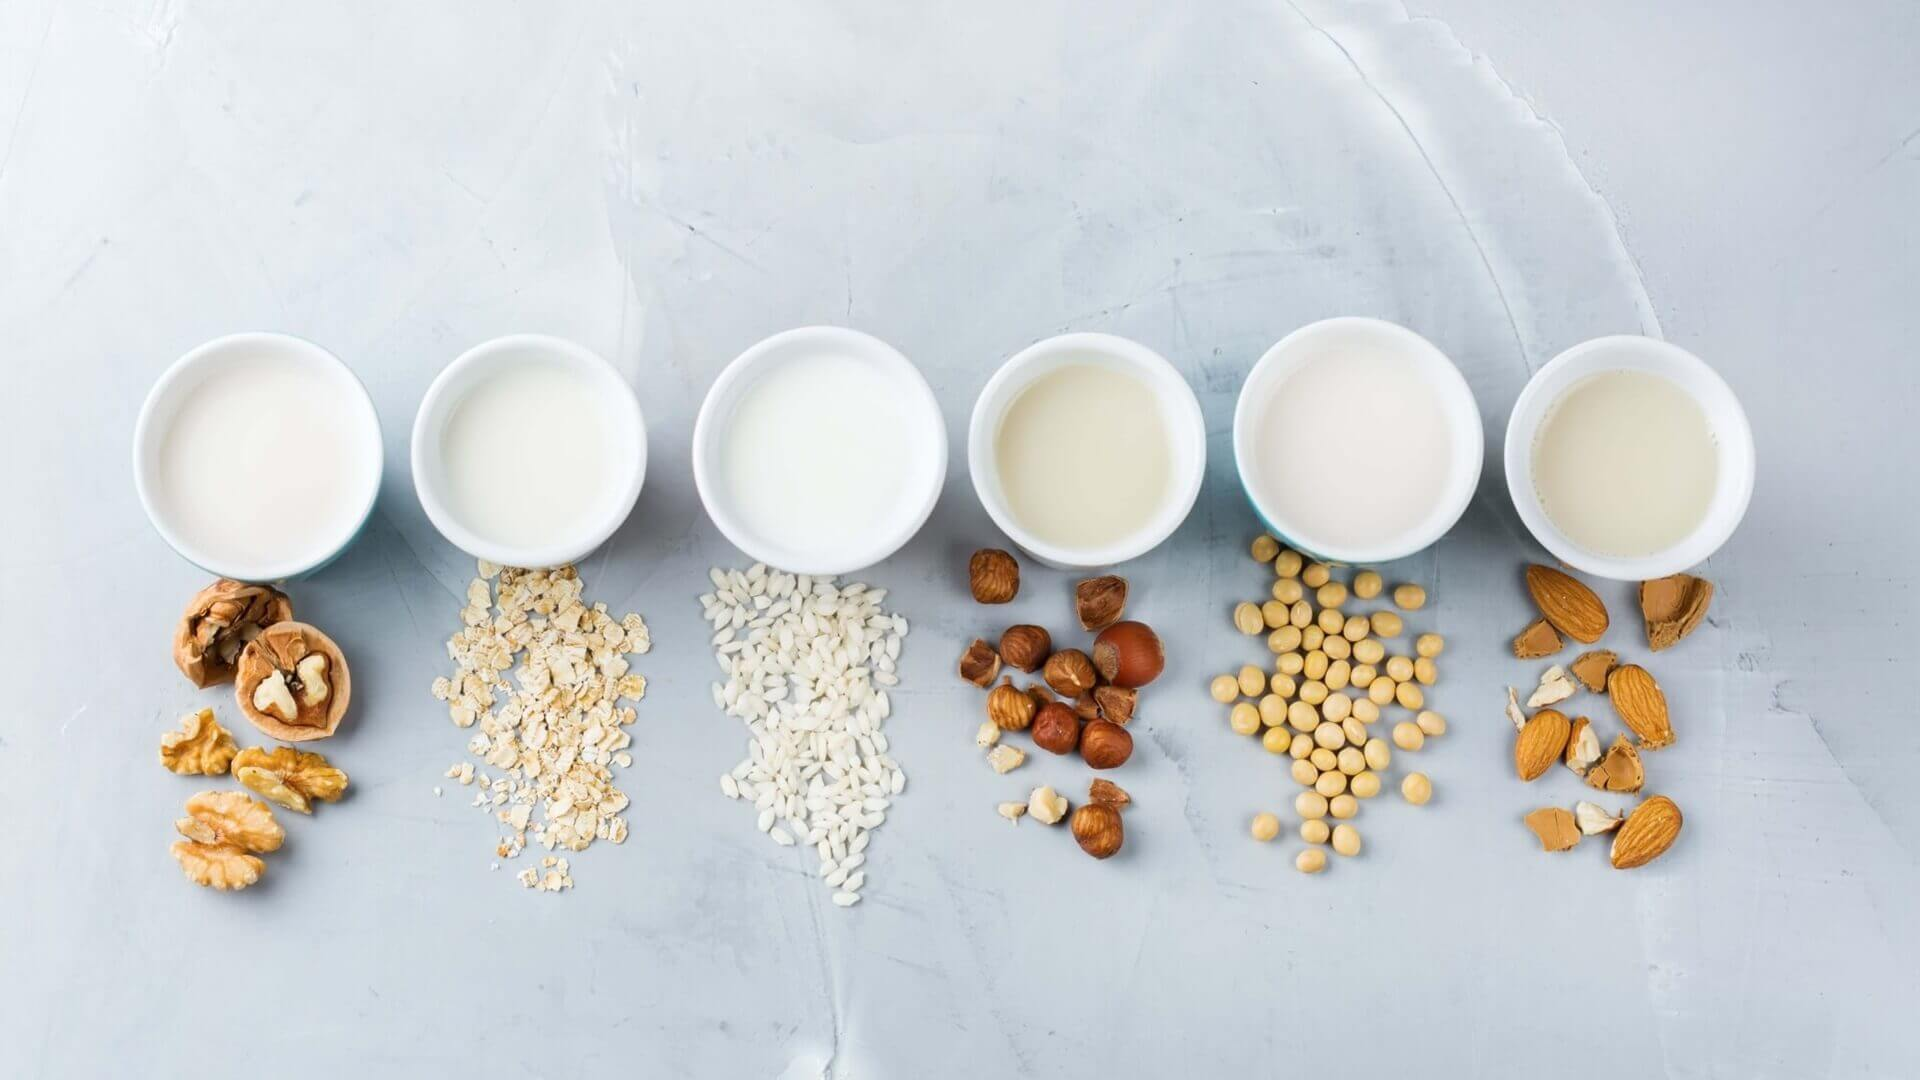 Sourcing Best Plant Protein Based on Application Needs